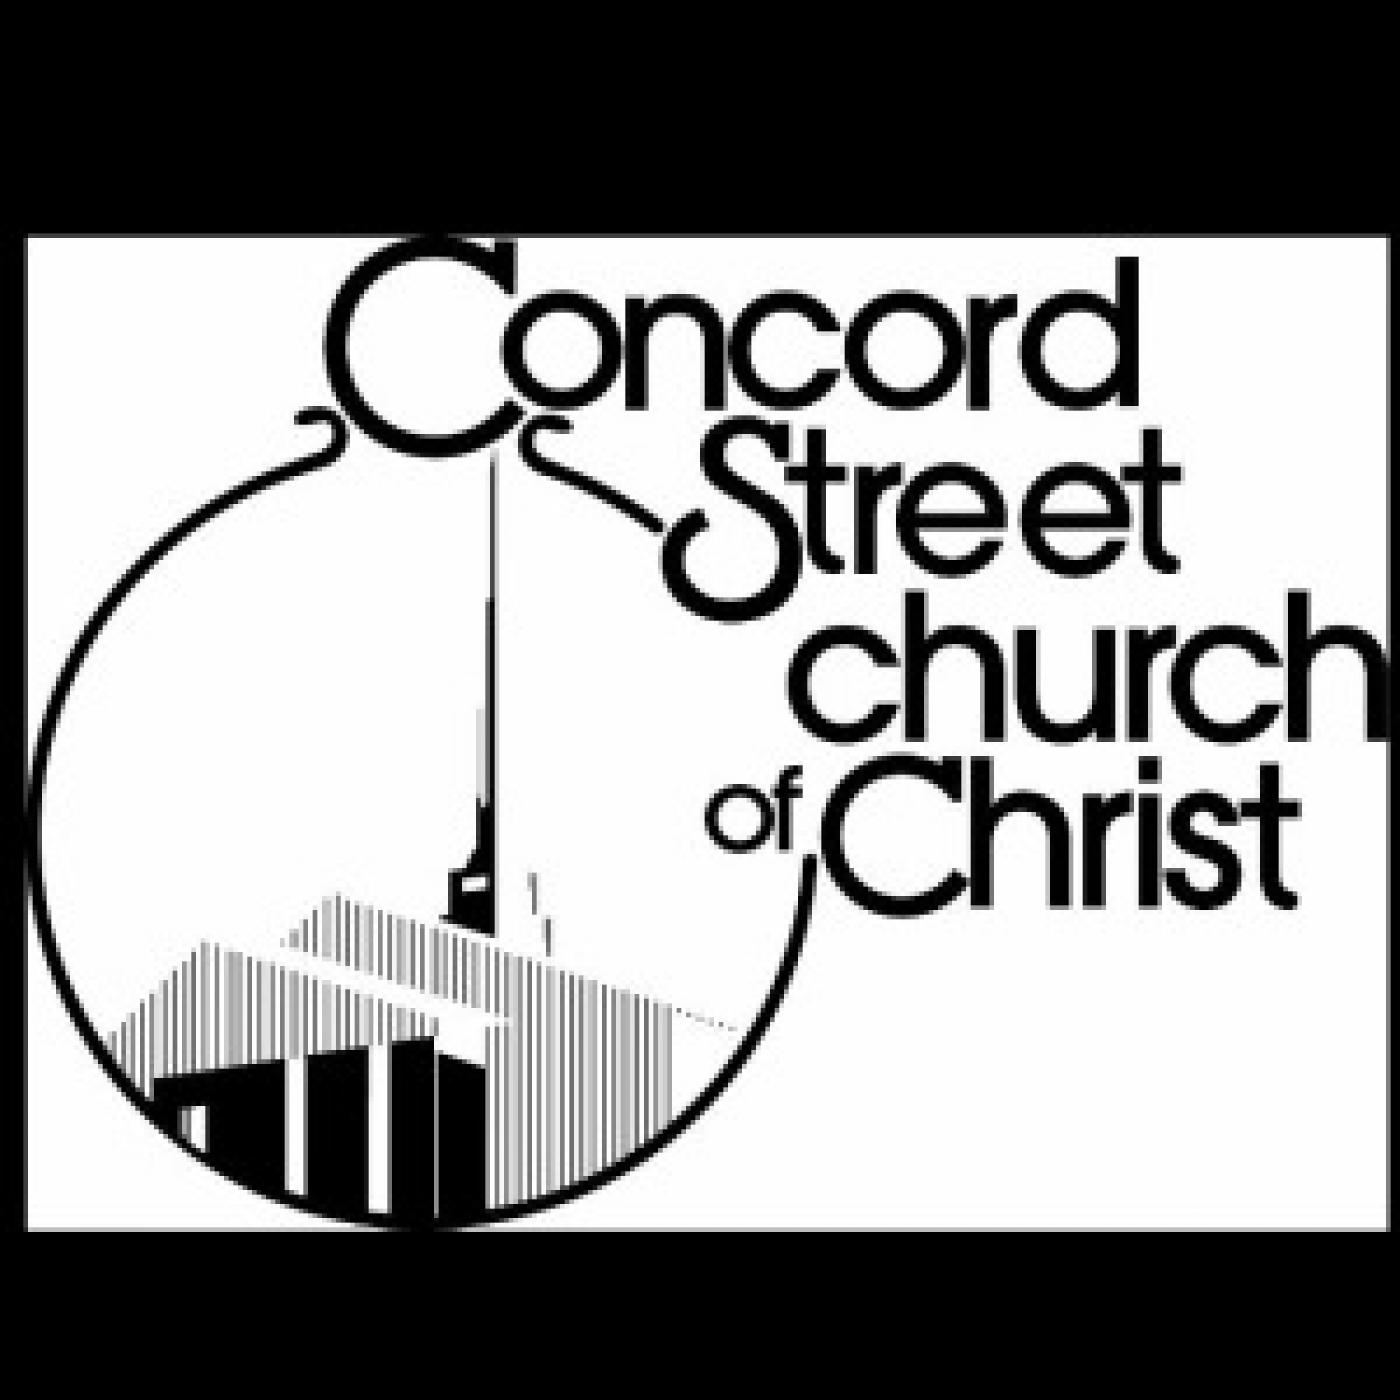 Concord Street Church of Christ